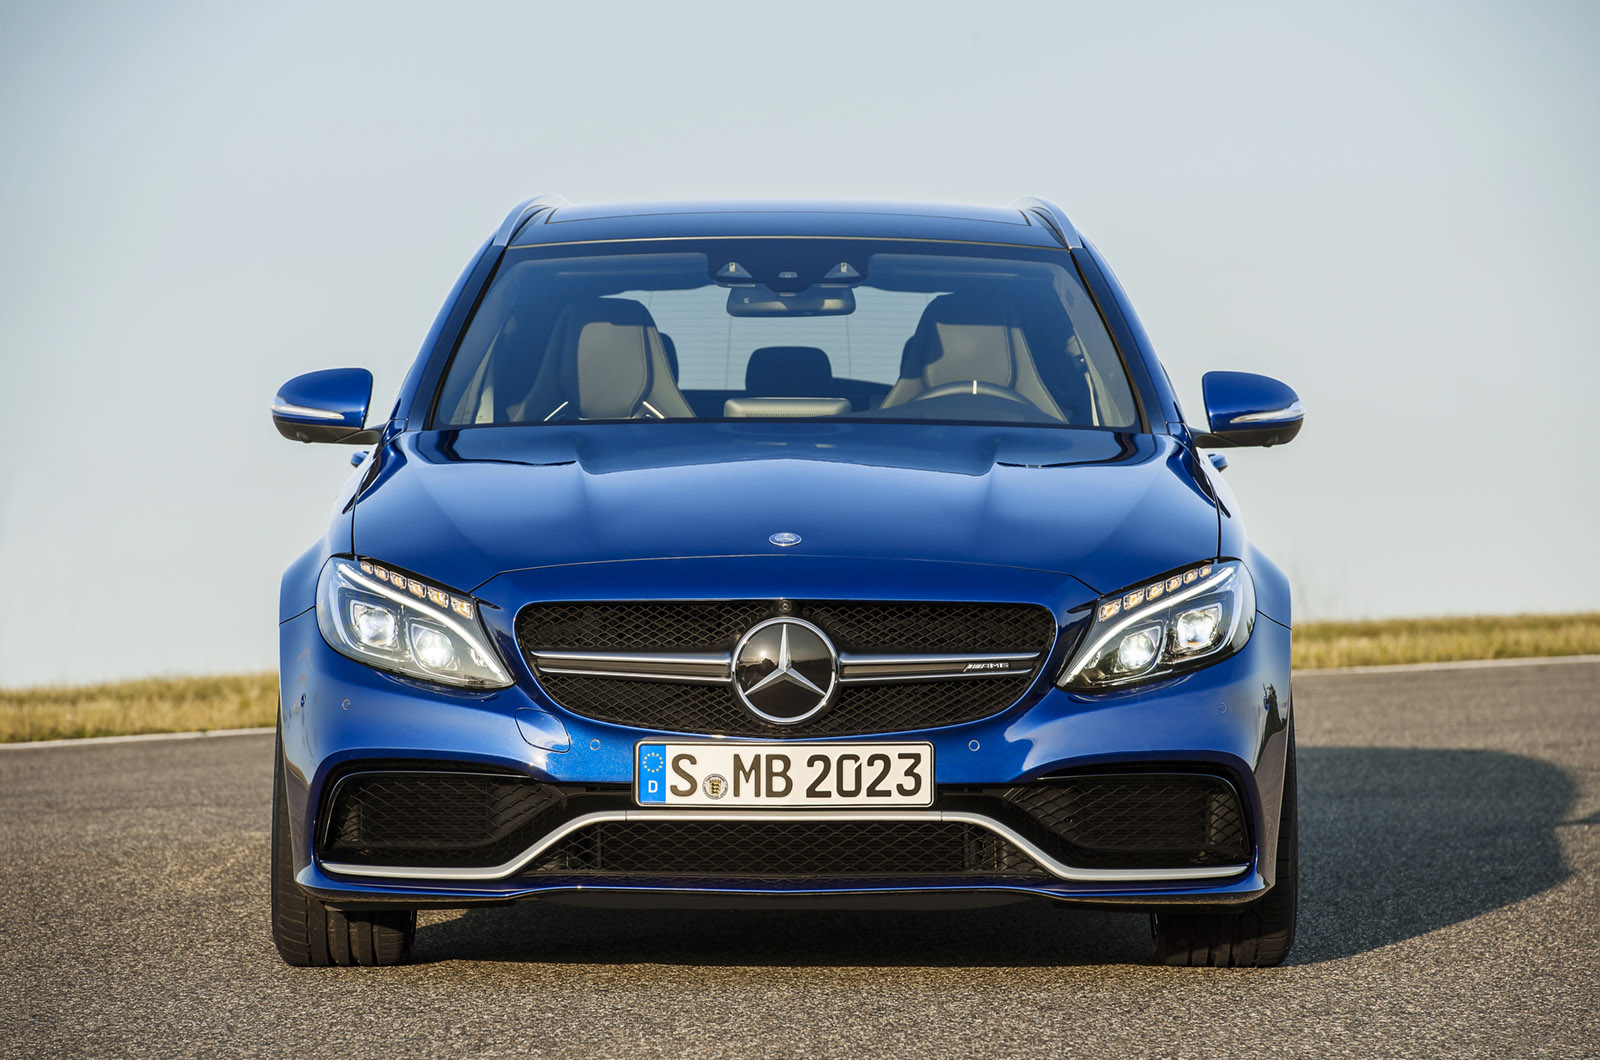 More Photos Of New Mercedes Benz Amg Including The Wagon